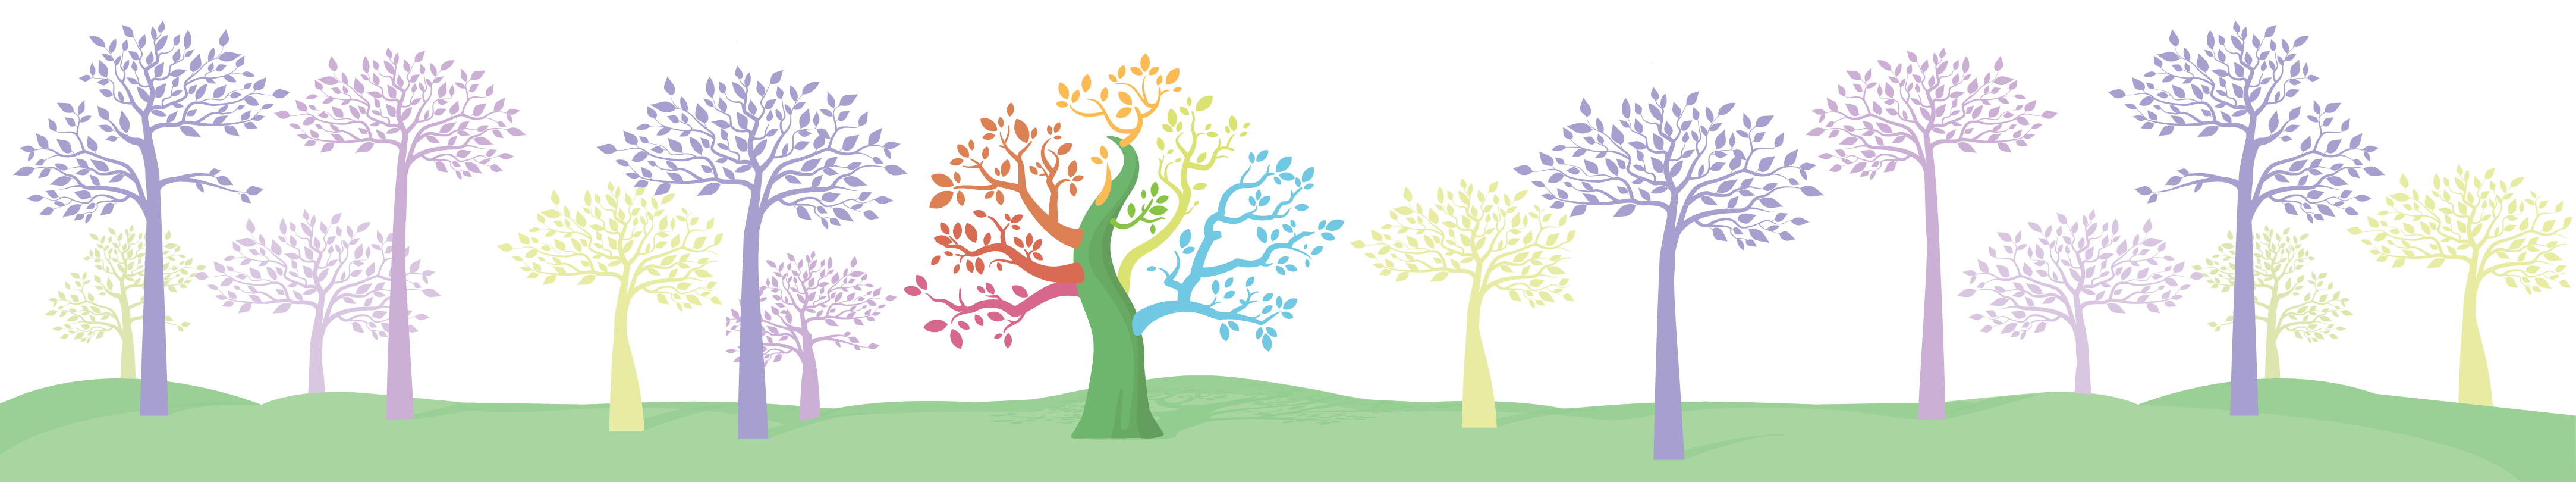 A drawing of trees illustrating how one tree can incorporate characteristics from a nearby tree (variants).